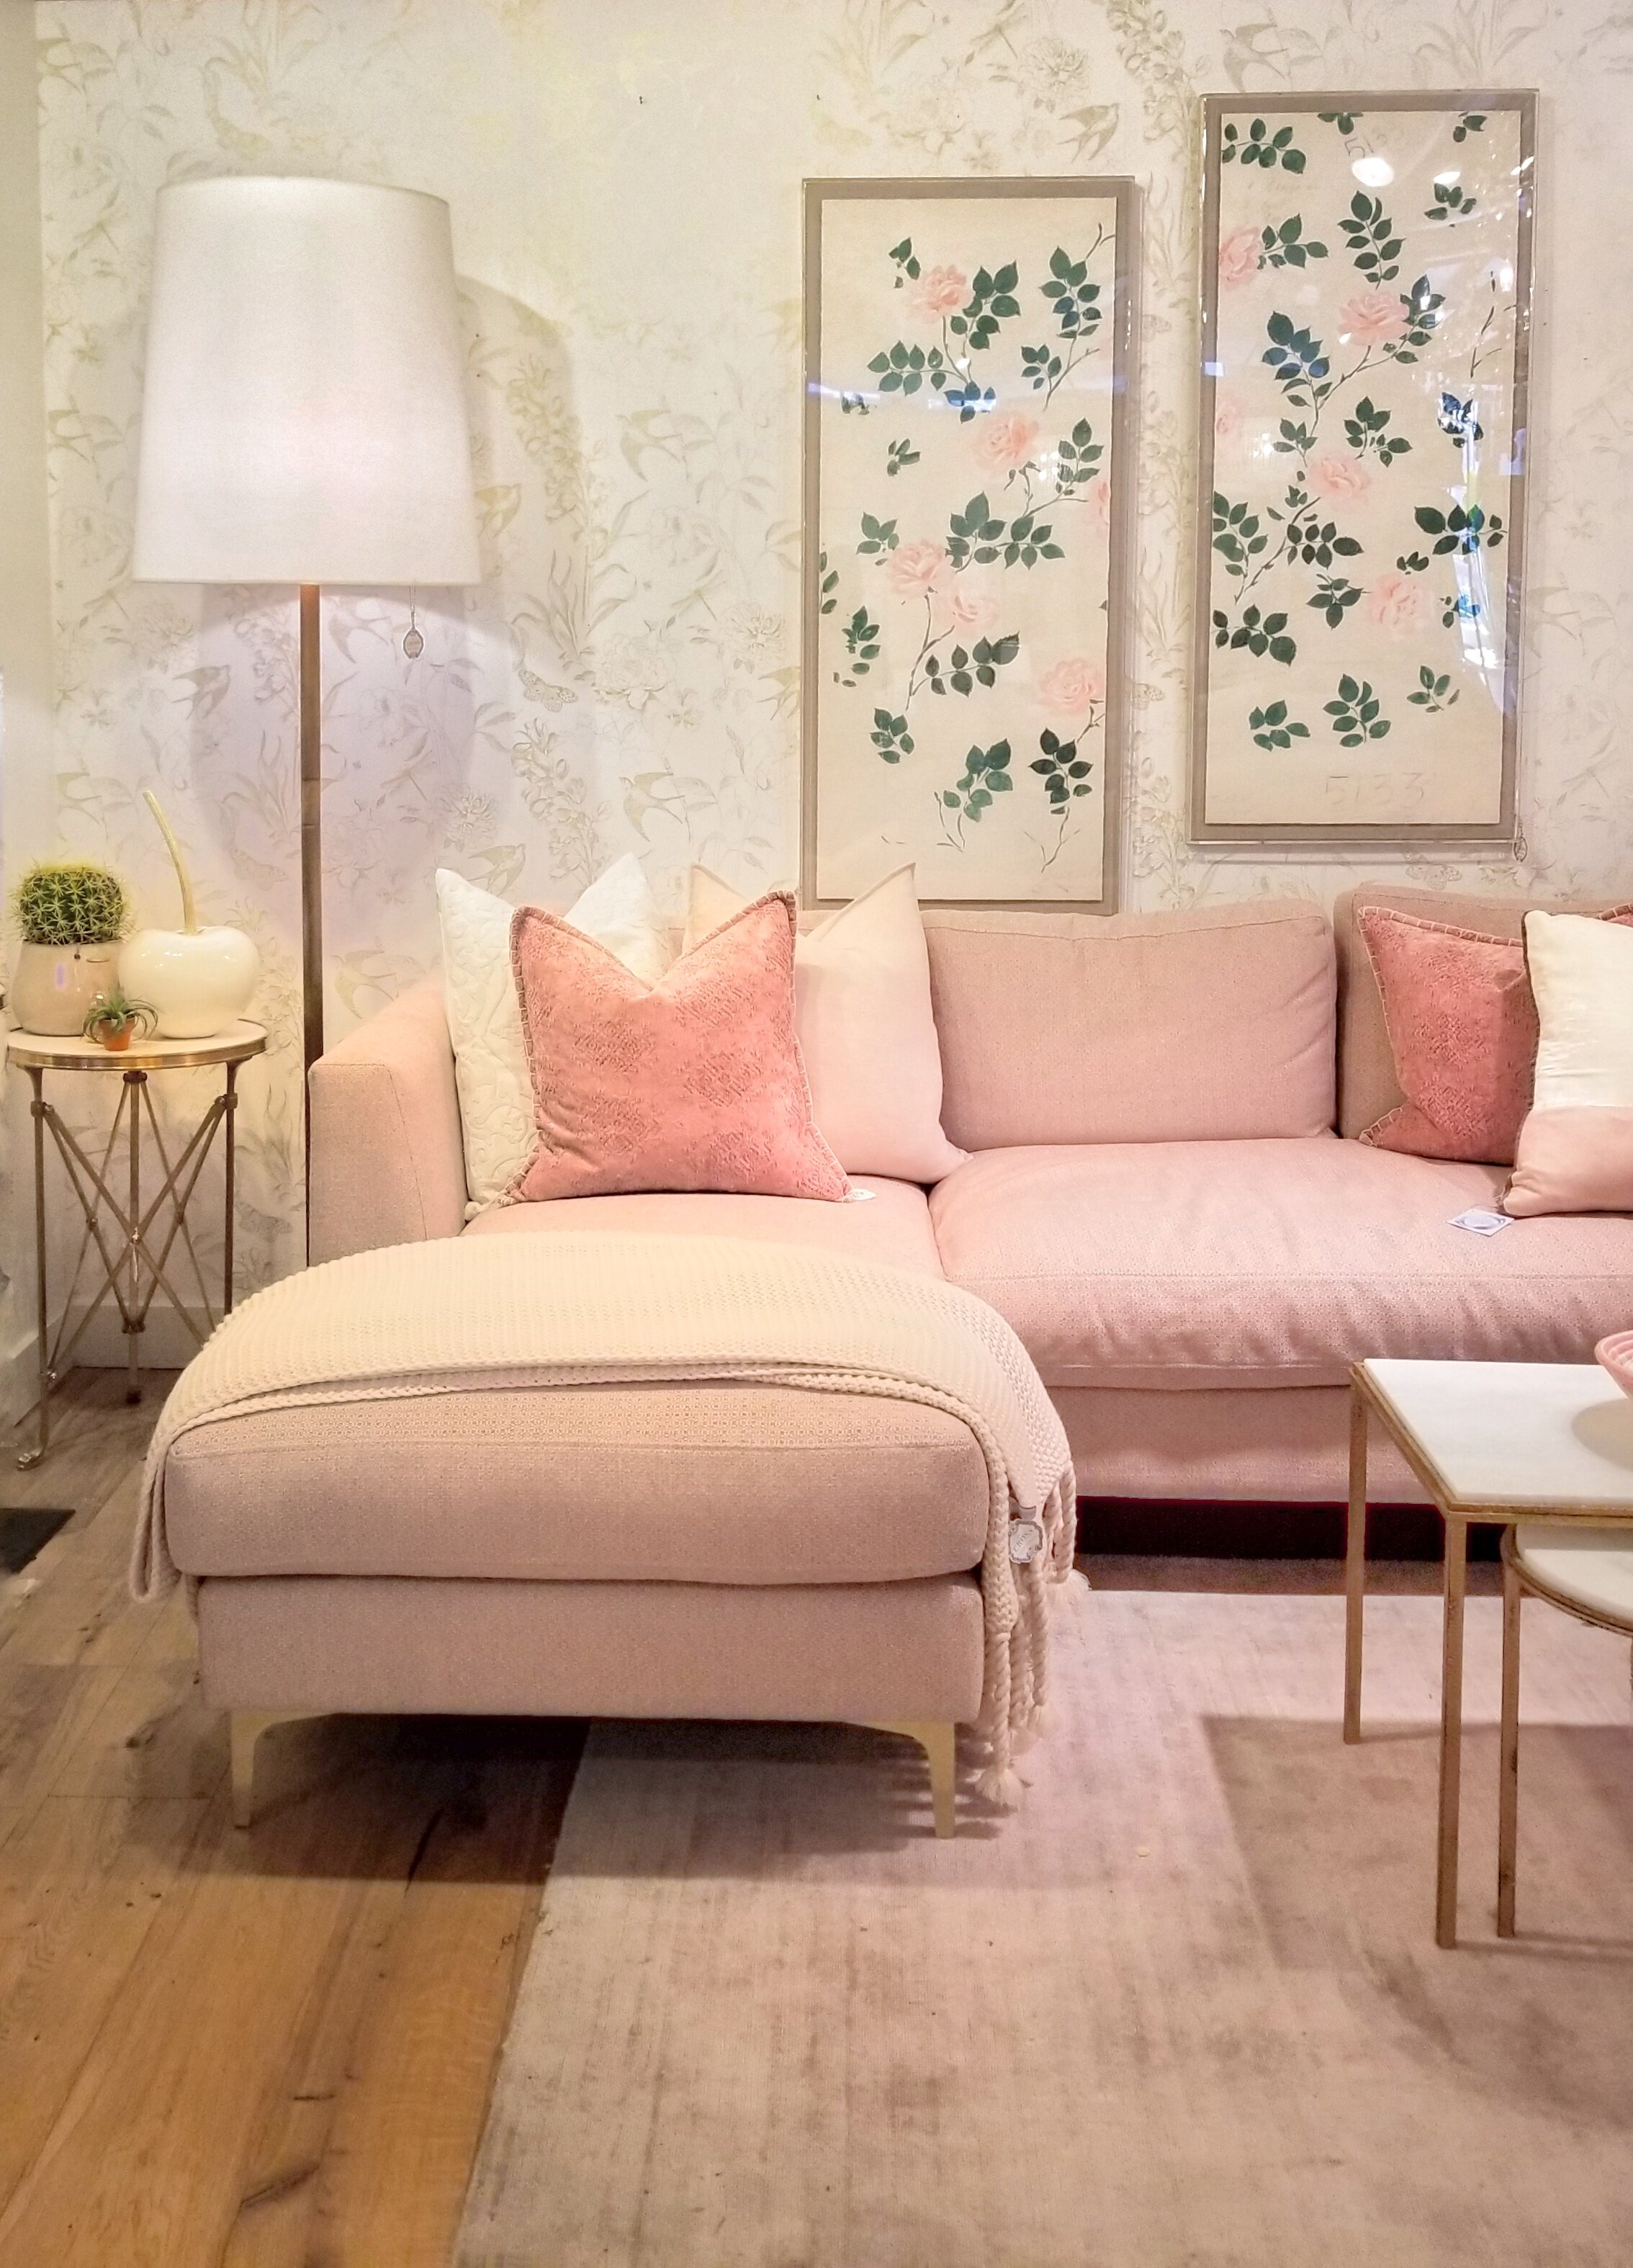 interior-designs-by-adrienne-cranbrook-bc-oversized-floor-lamp-pink-sofa-with-chaise-botanical-art-the-cross-decor-&-design